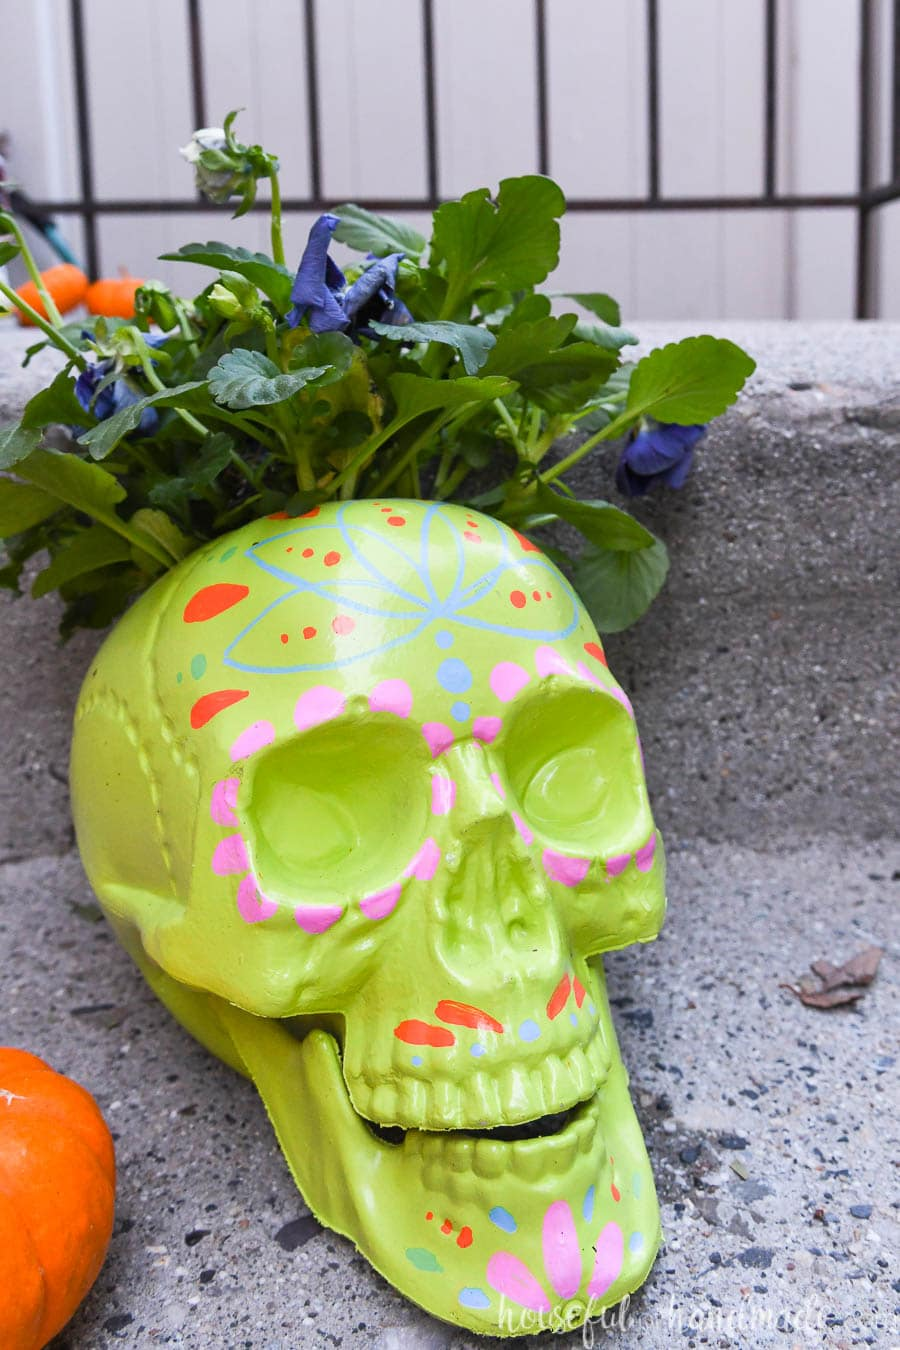 Lime green sugar skull planter with colorful decorations around the face.